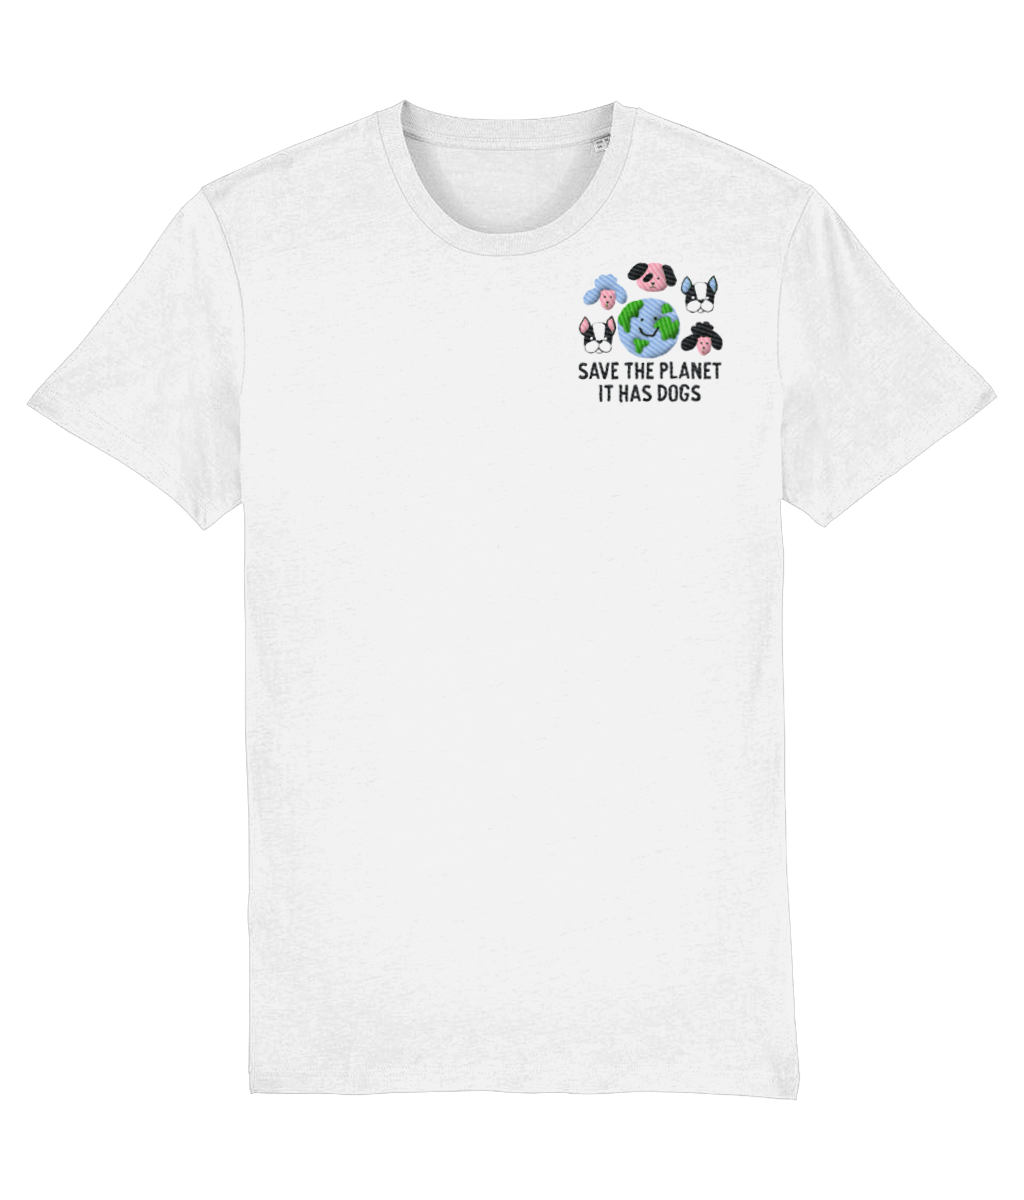 Save the planet it has dogs t-shirt